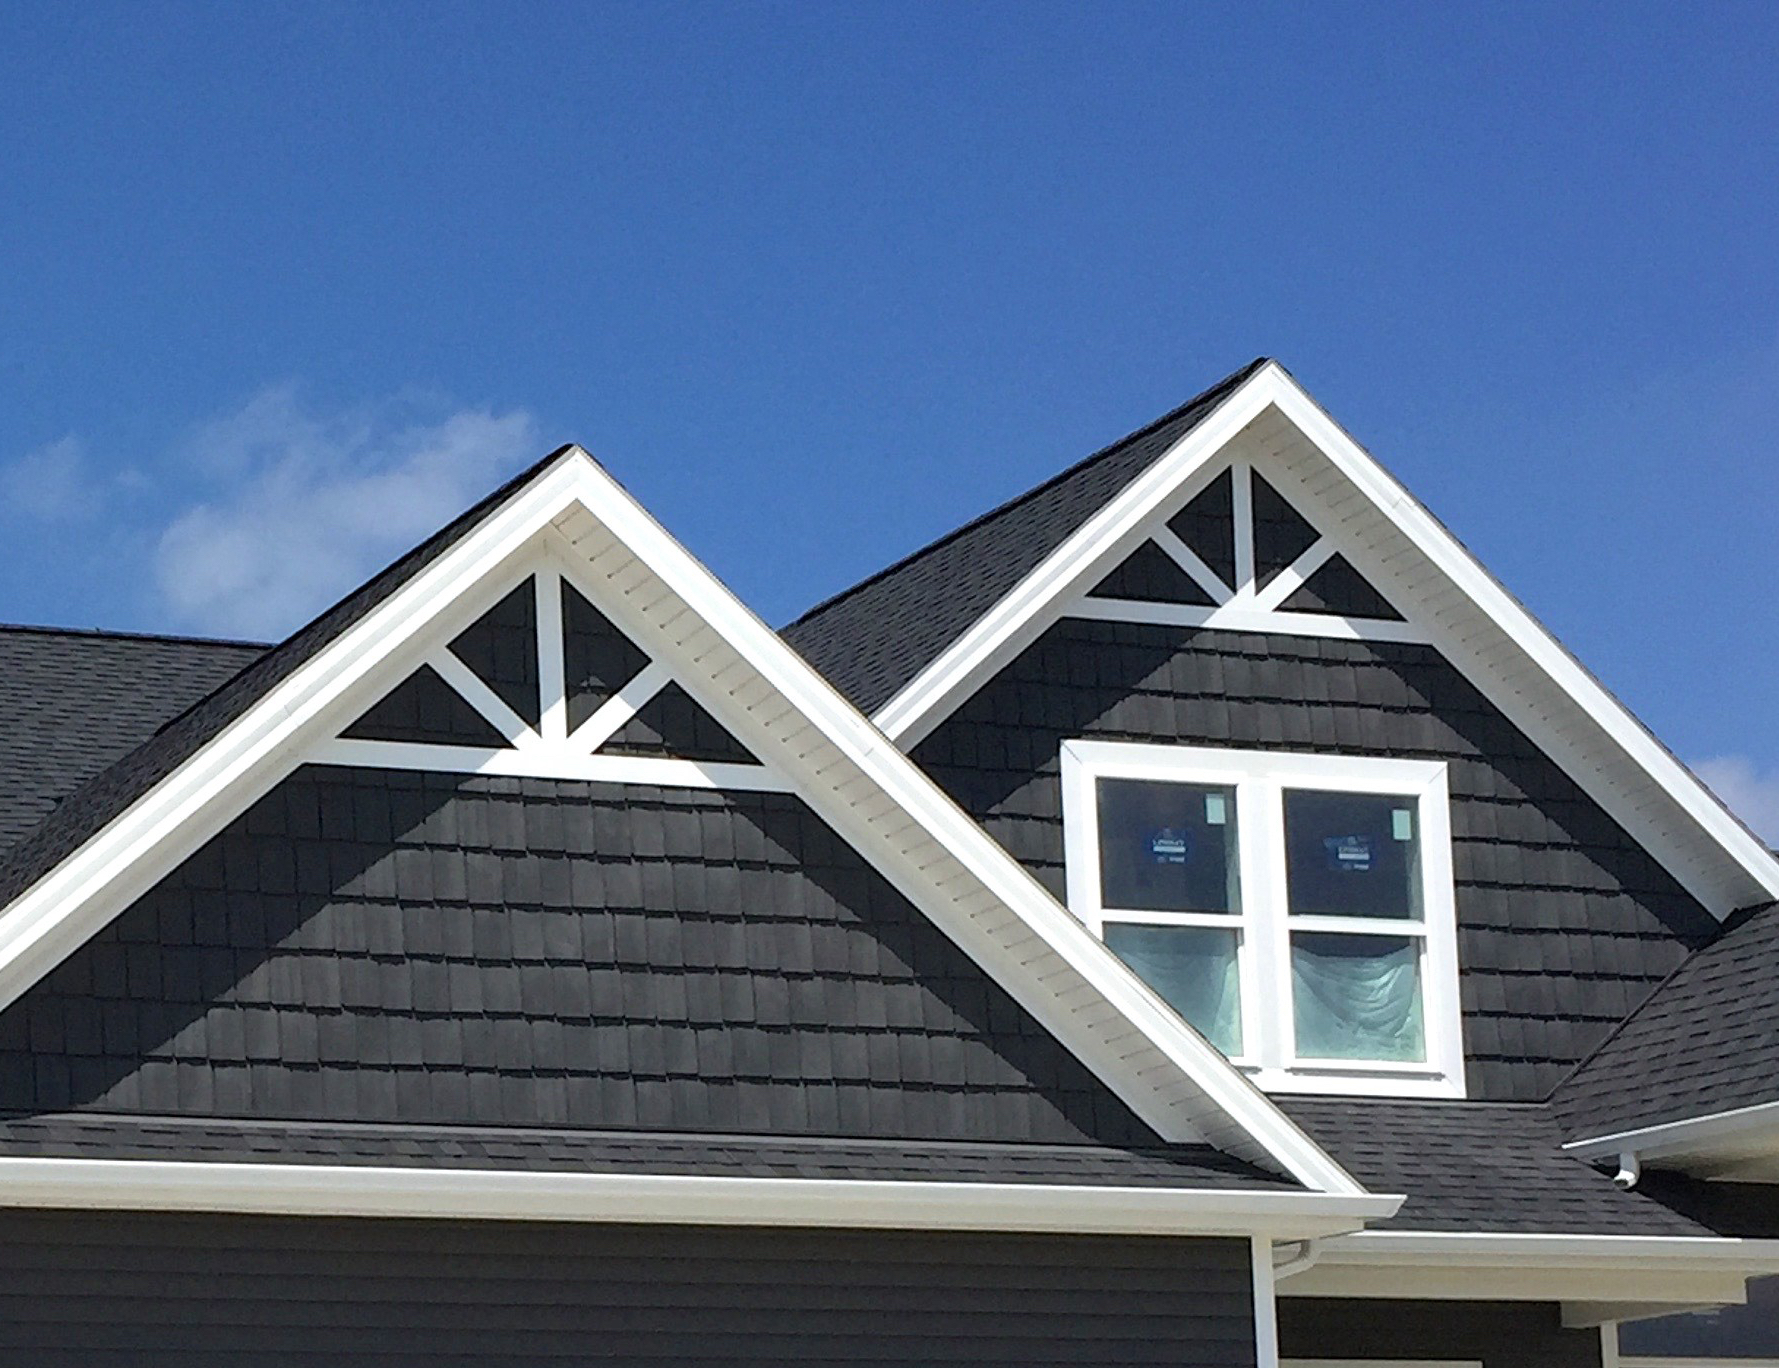 Royal ironstone dark grey siding and dark grey shakes Gable accents